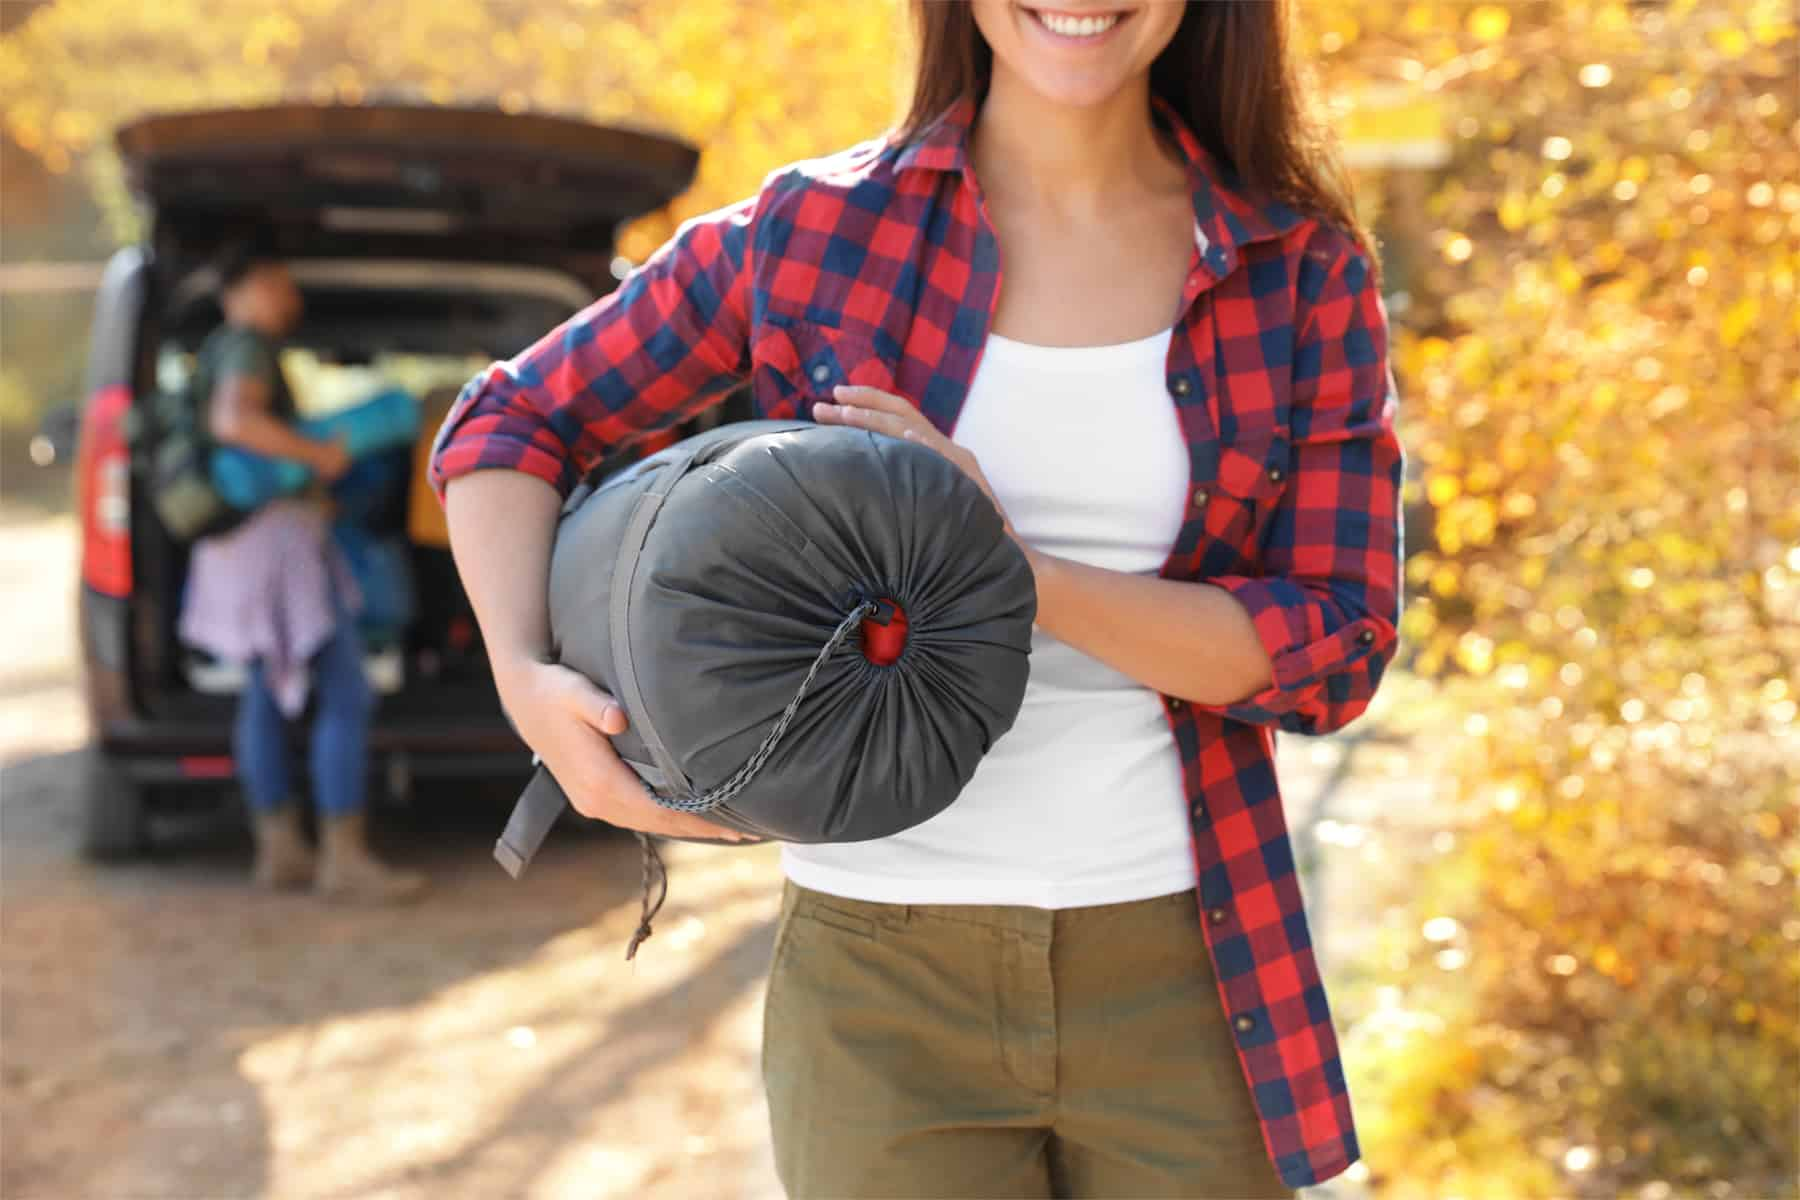 This is the cover photo for our Best Sleeping Bag for Camping article. It features a woman holdings a sleeping bag with a man loading a vehicle in the background.